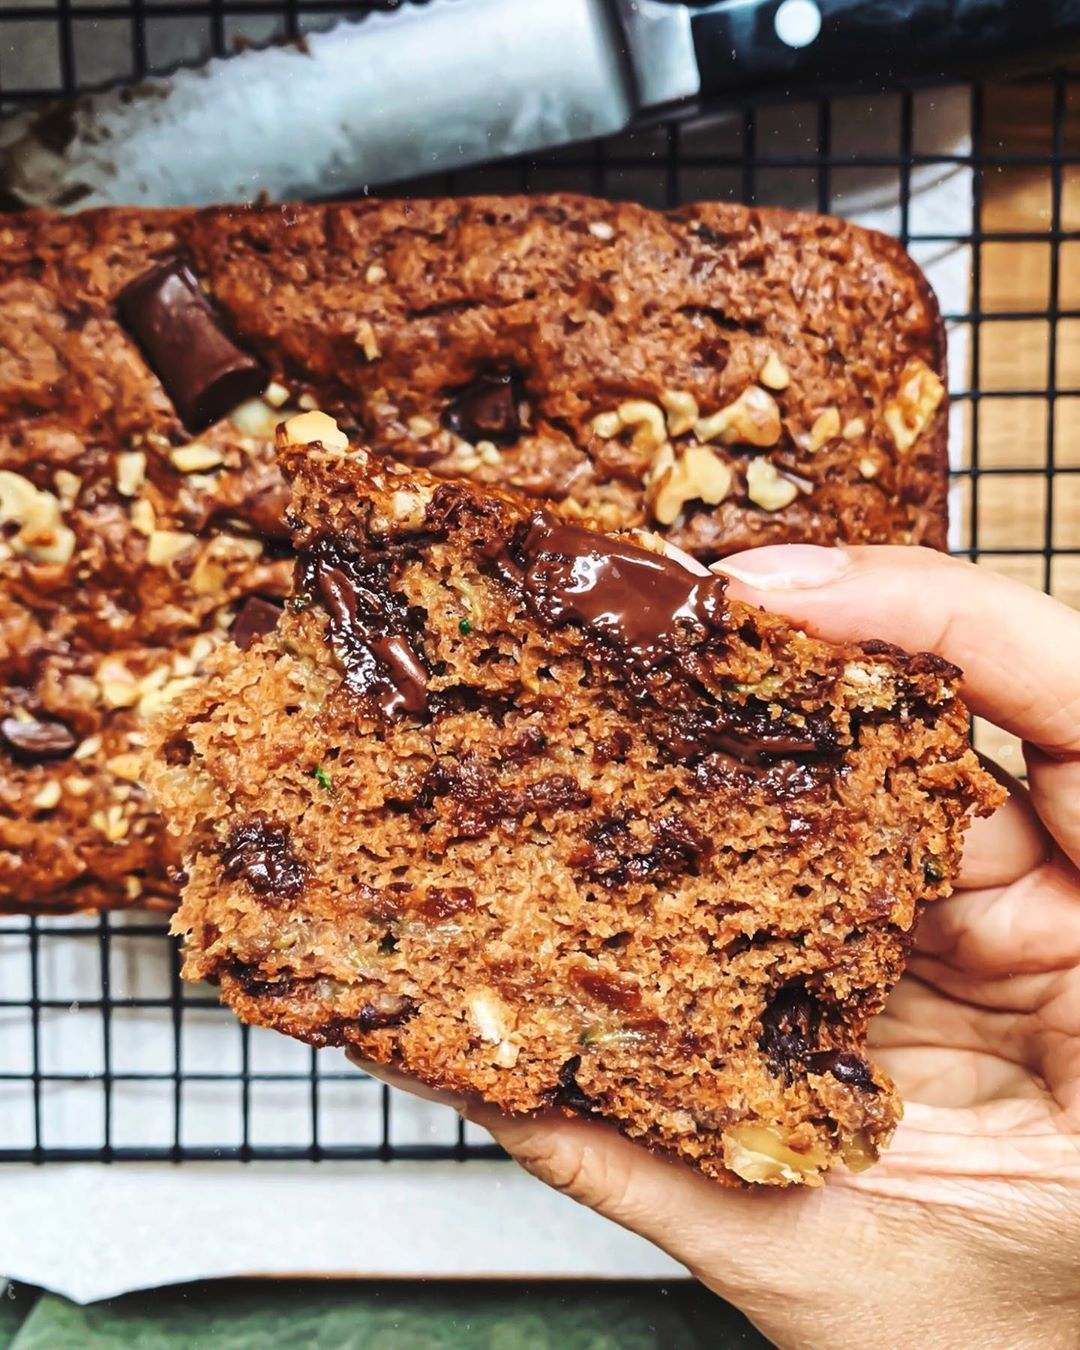 Laura Wright On Instagram Zucchini Bread Is A Vehicle For Chocolate And Walnuts Period Made A Dent In My Gigantic Zucc Delicious Vegan Recipes Walnuts Food